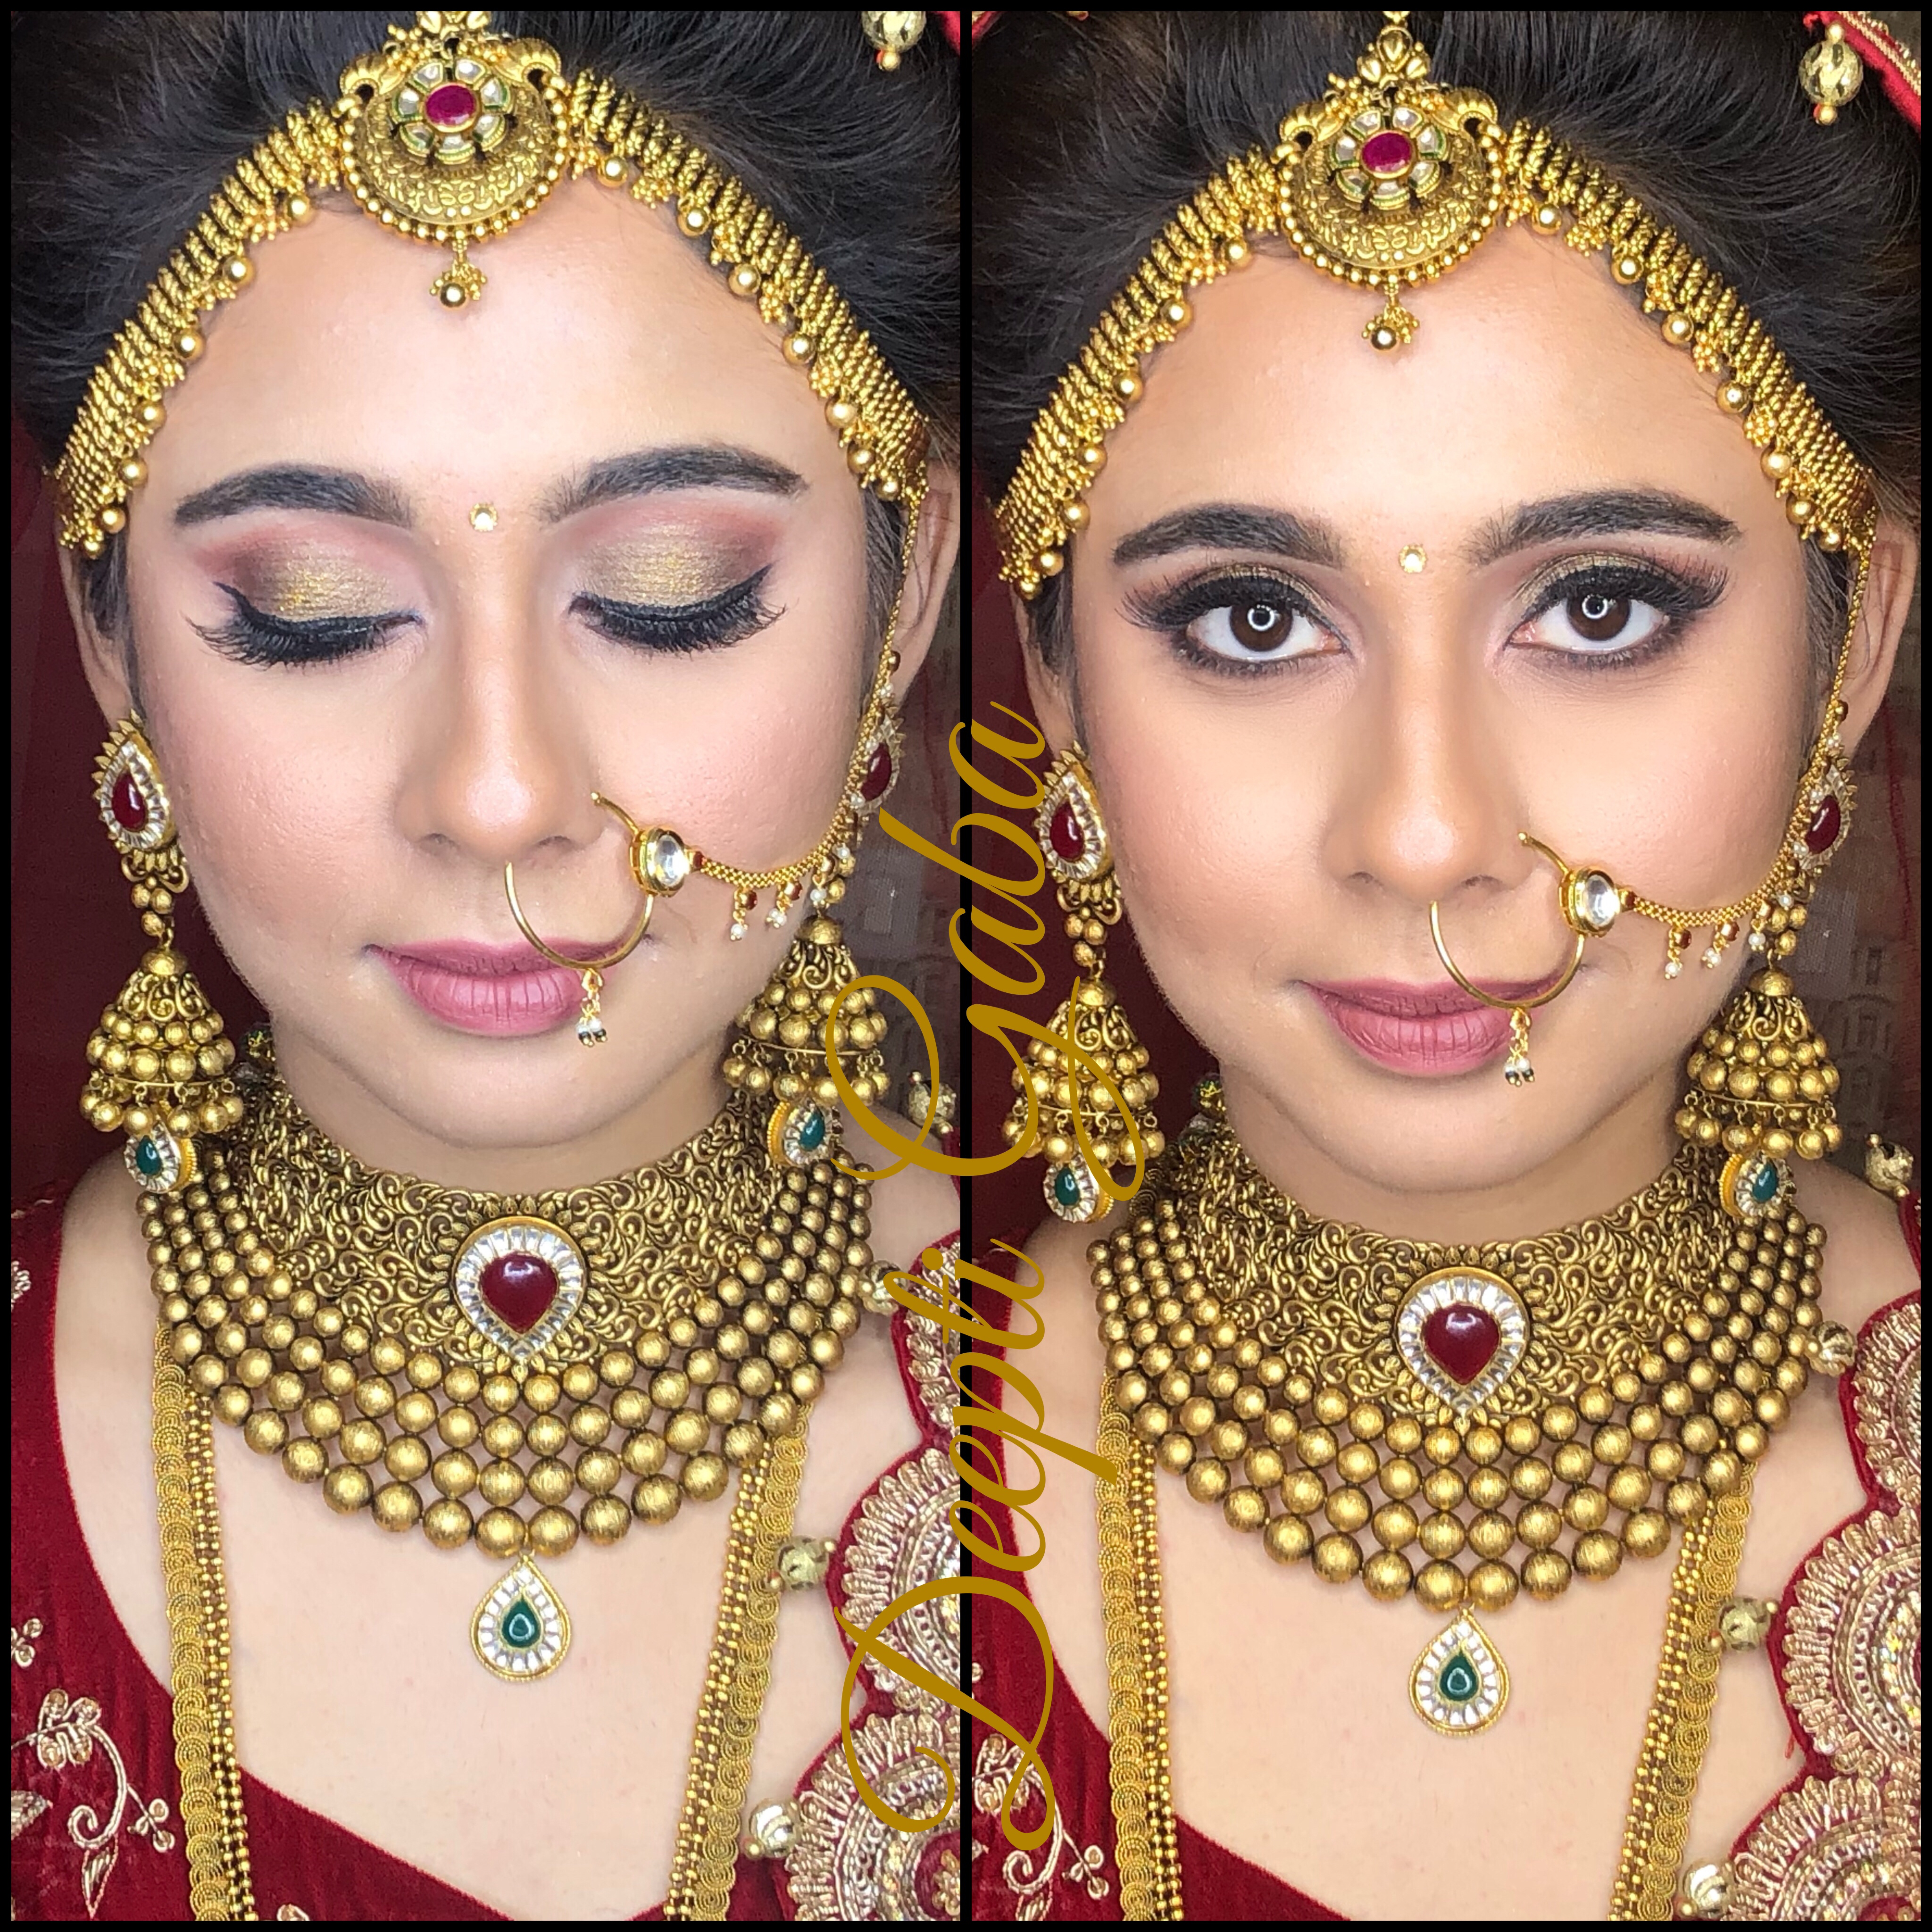 SOFT AIRBRUSH BRIDAL LOOK at my studio today!!! . For bookings please email muadeeptigaba@gmail.com or Comment here!!! . #airbrushmakeup #airbrush #bridalmakeup #indianbride #bridalmakeupartist #bridalmakeup